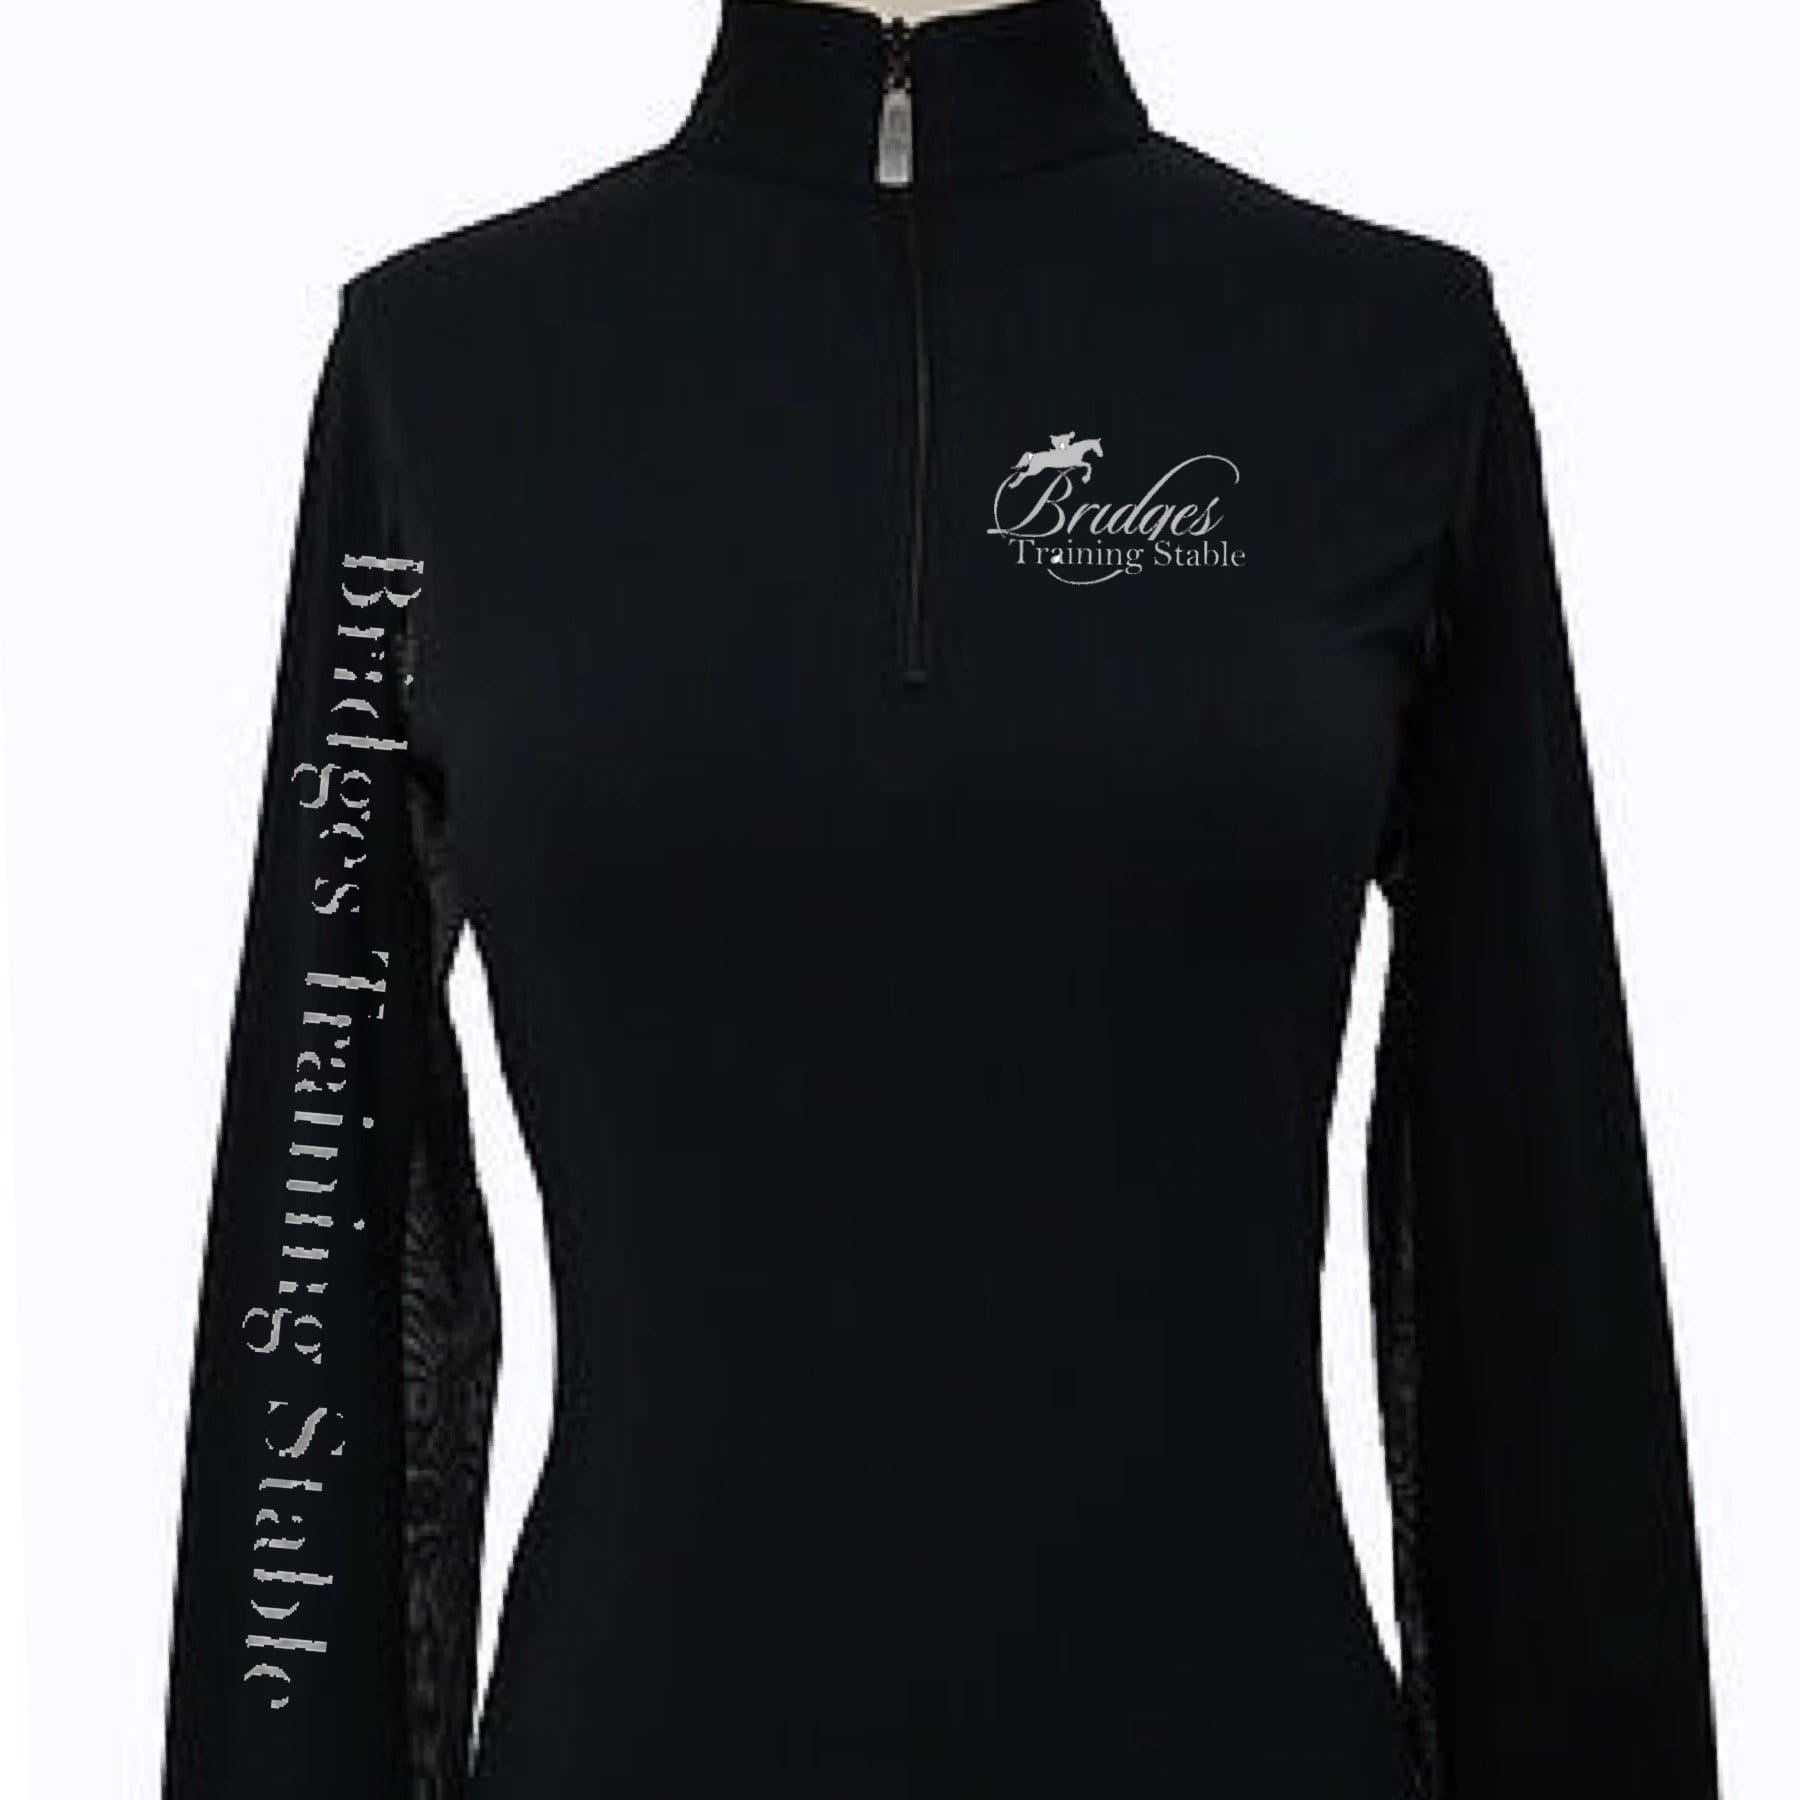 Equestrian Team Apparel Custom Team Shirts Youth / black Bridges Training Stable equestrian team apparel online tack store mobile tack store custom farm apparel custom show stable clothing equestrian lifestyle horse show clothing riding clothes horses equestrian tack store